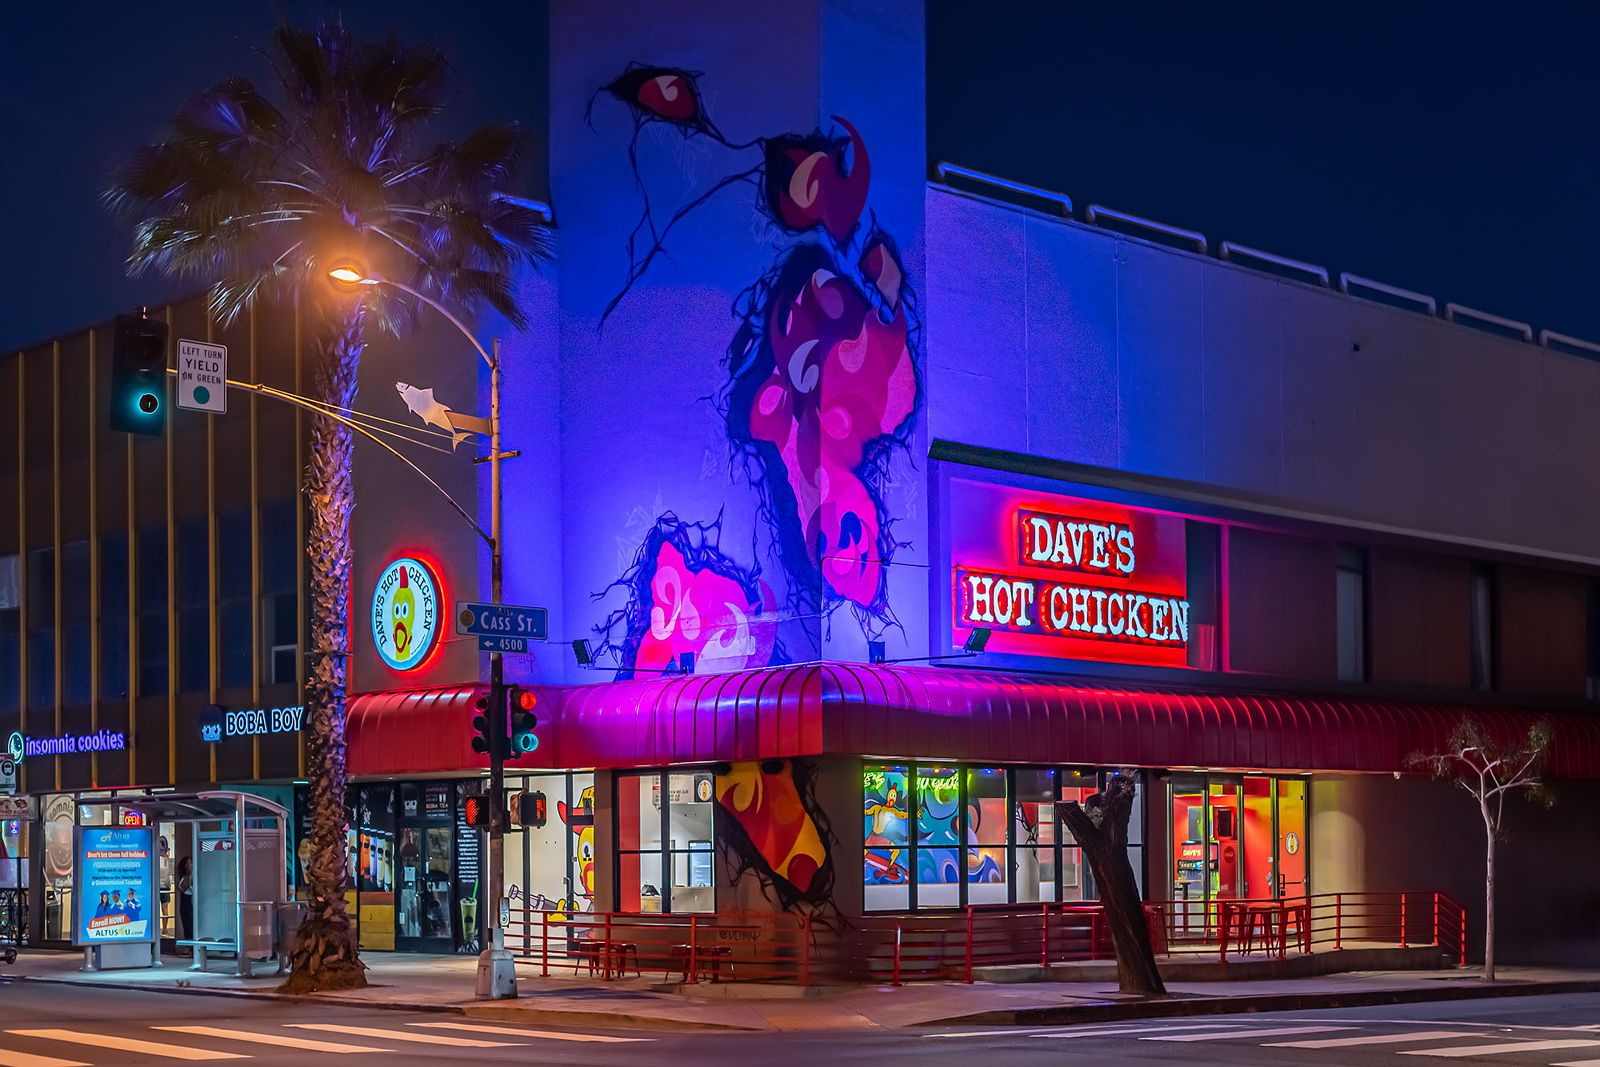 Daves-Hot-Chicken-Brings-the-Heat-to-San-Diego-with-New-Pacific-Beach-Location